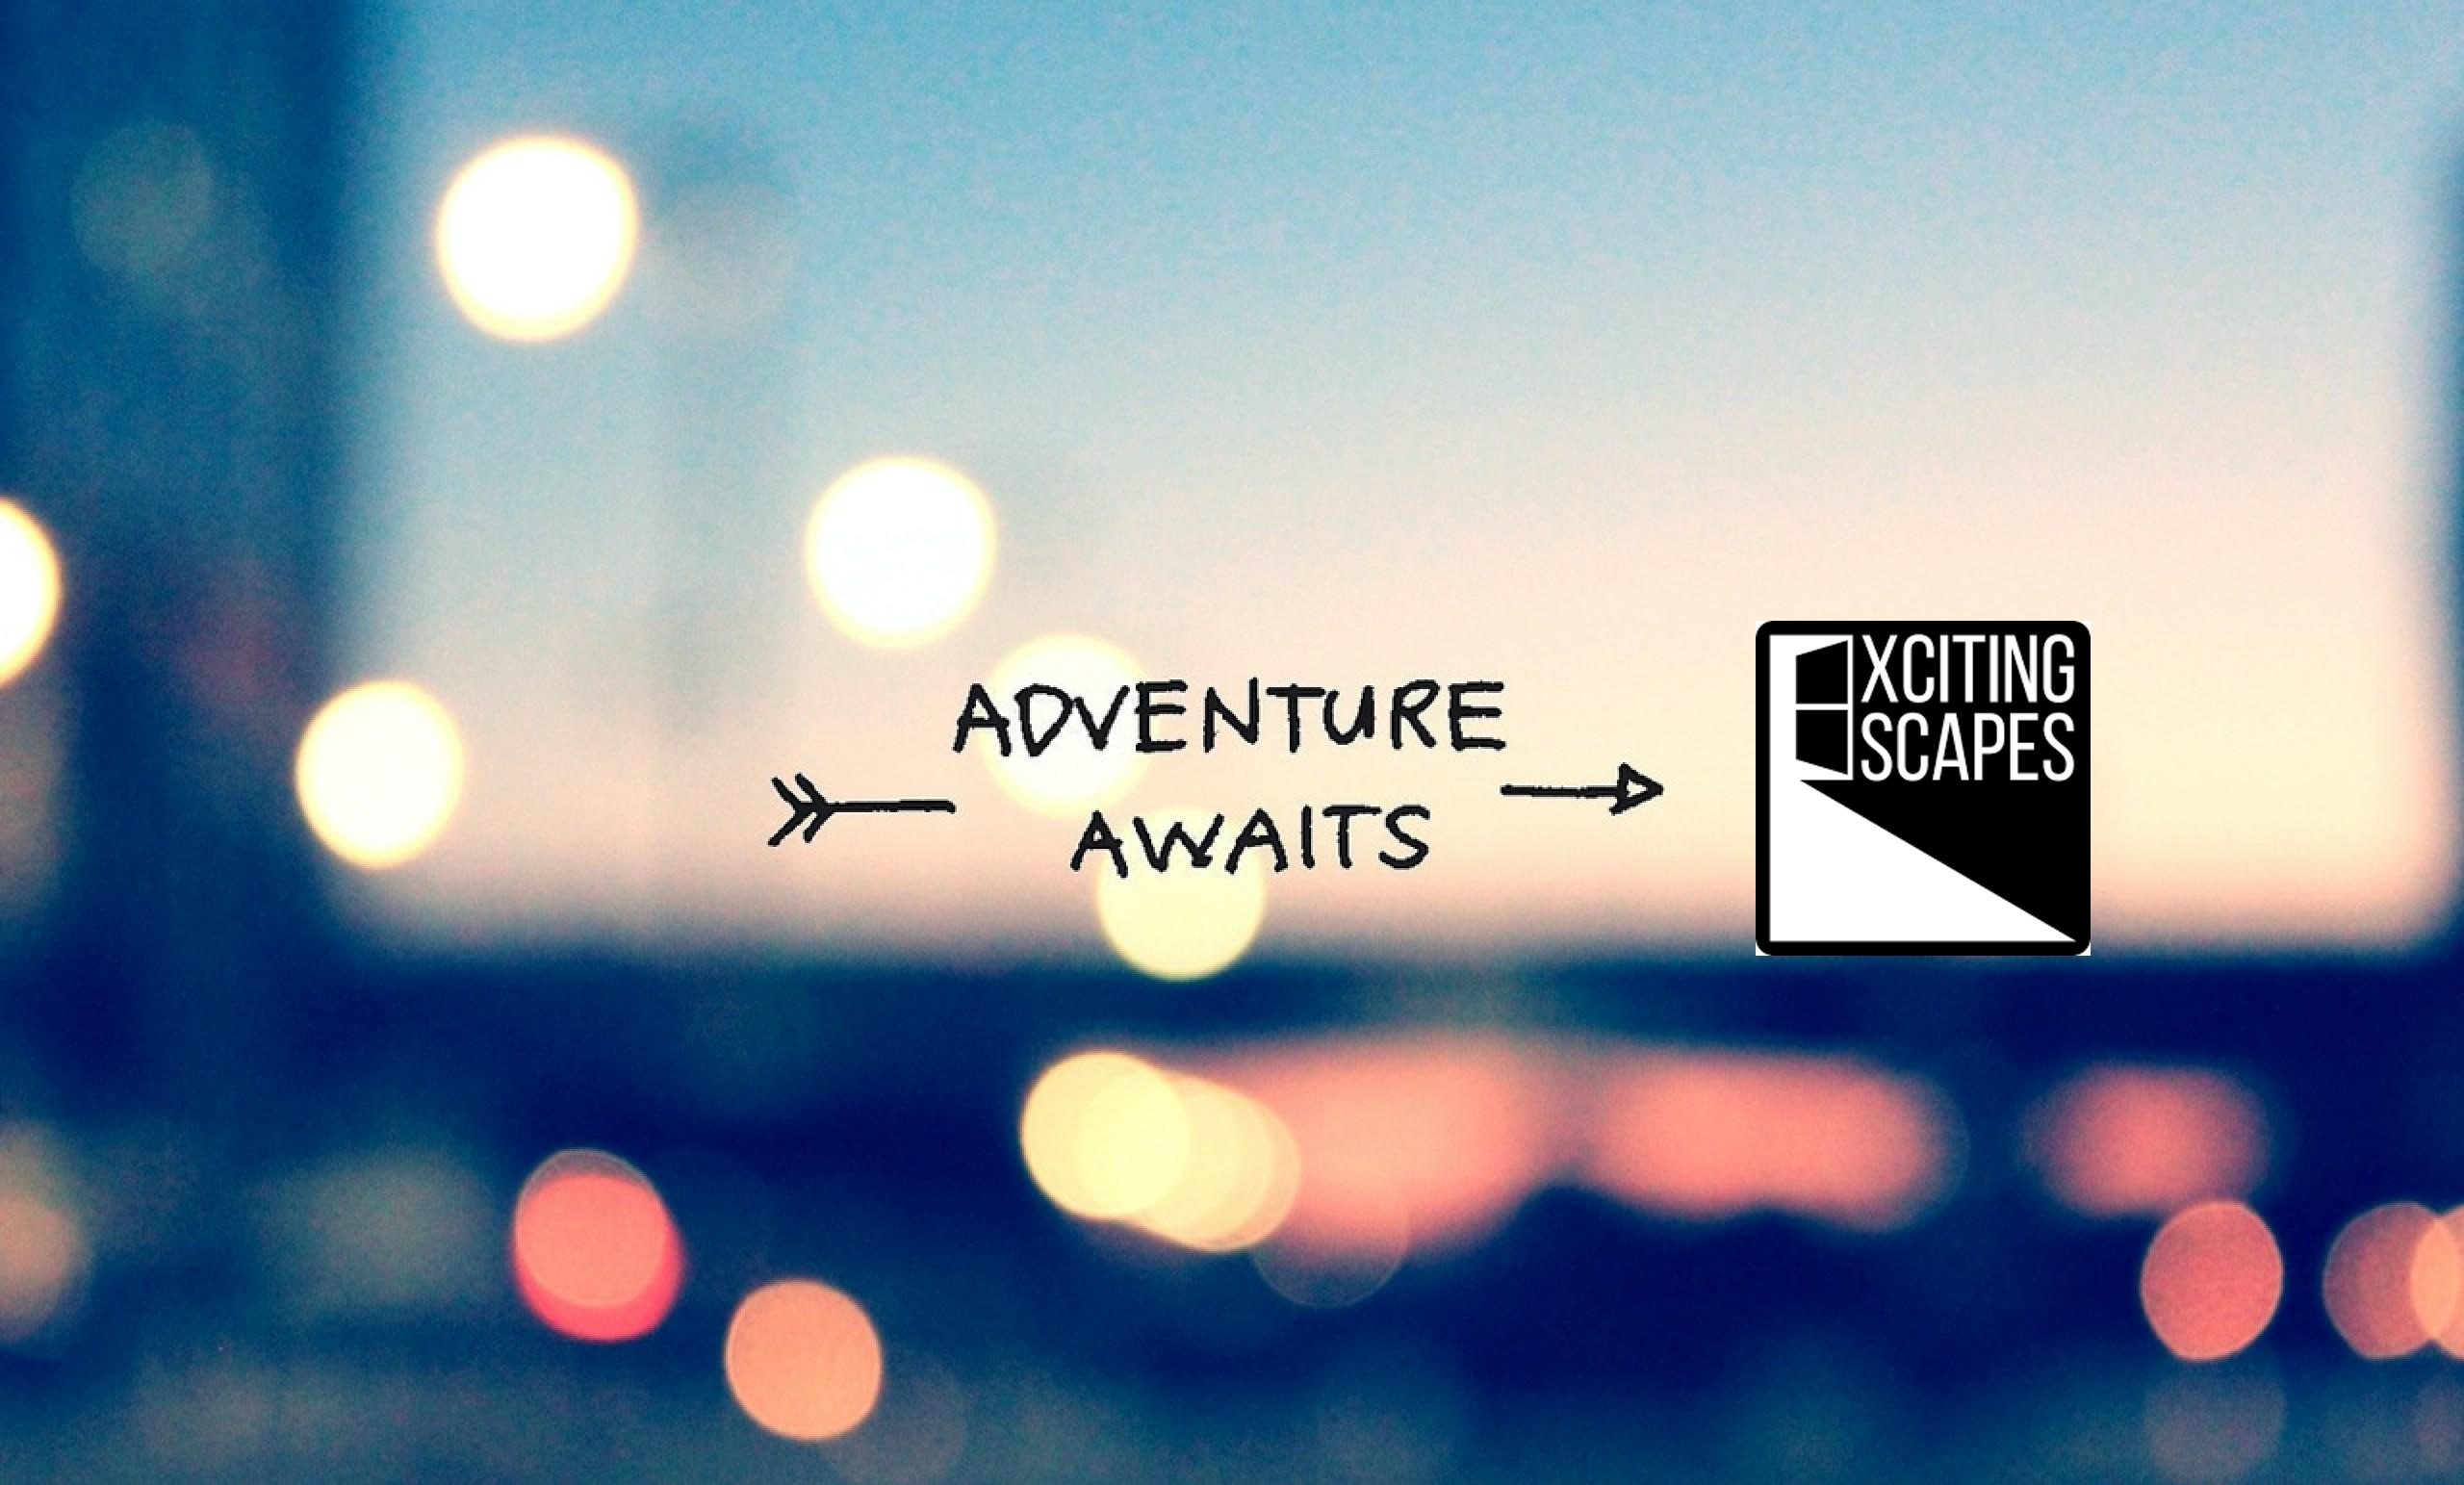 exciting-escapes-adventure